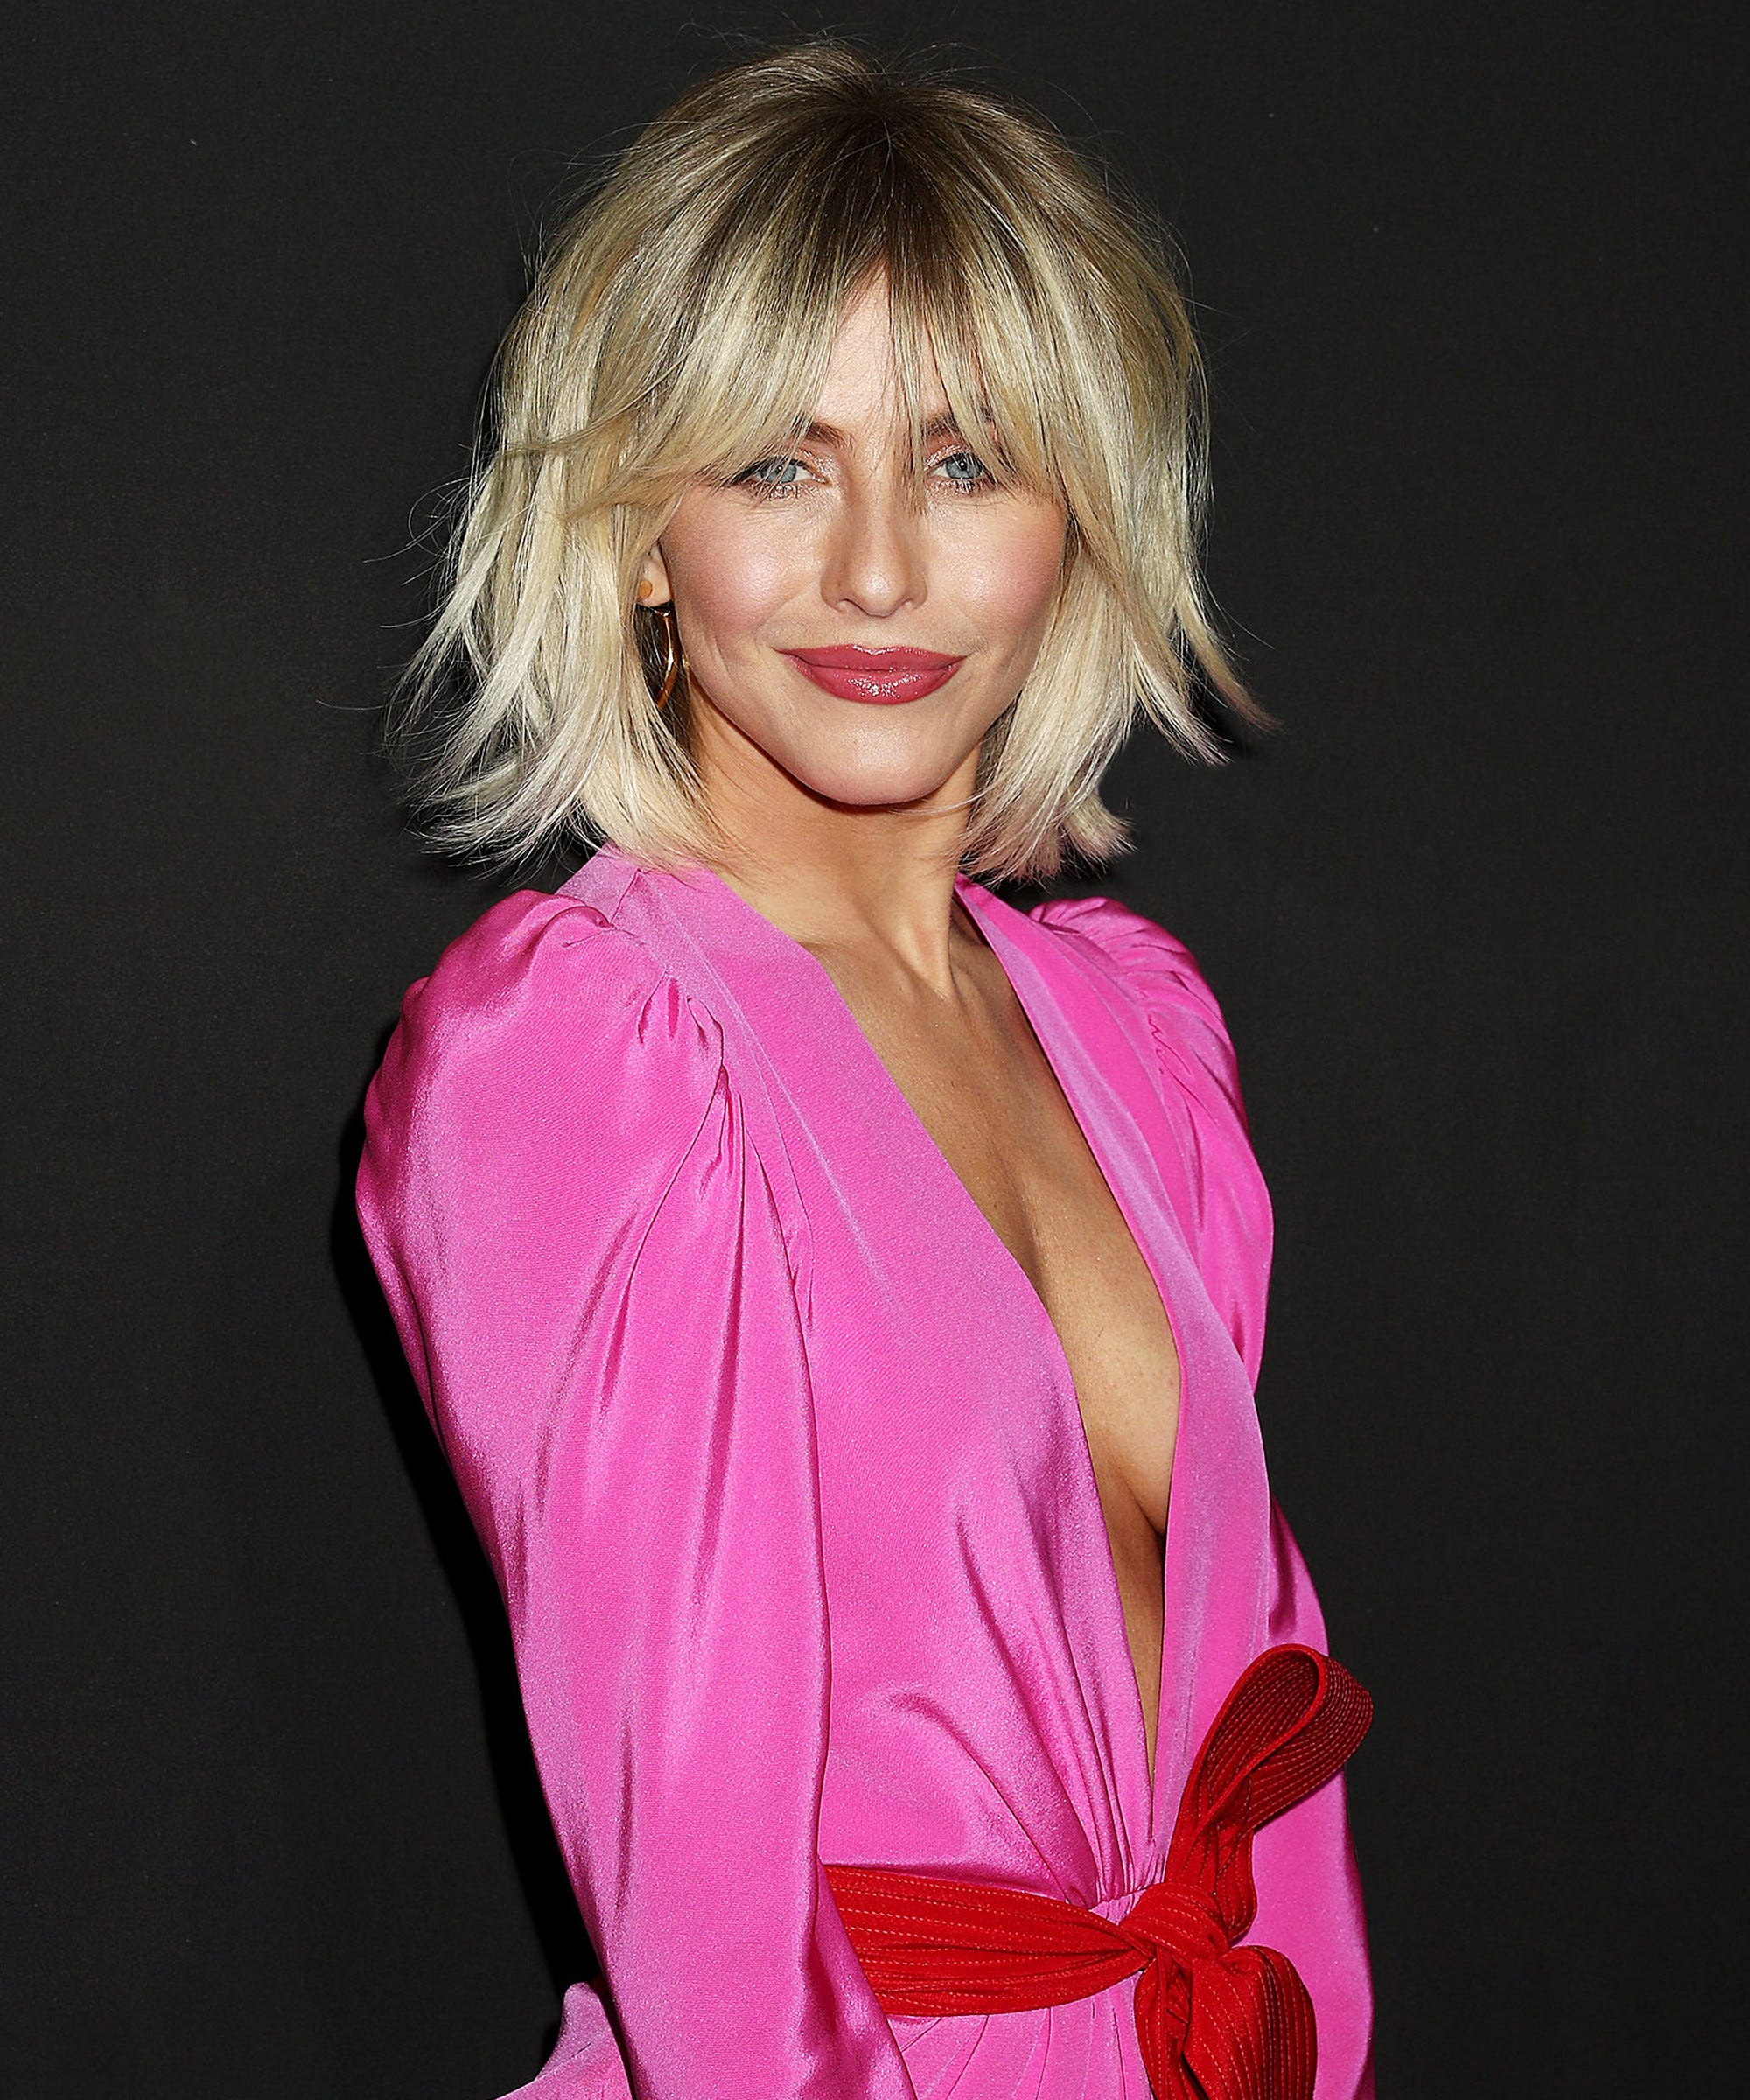 Julianne Hough Gets New Shag Haircut With Bangs Throughout Pink Shaggy Haircuts (View 18 of 20)